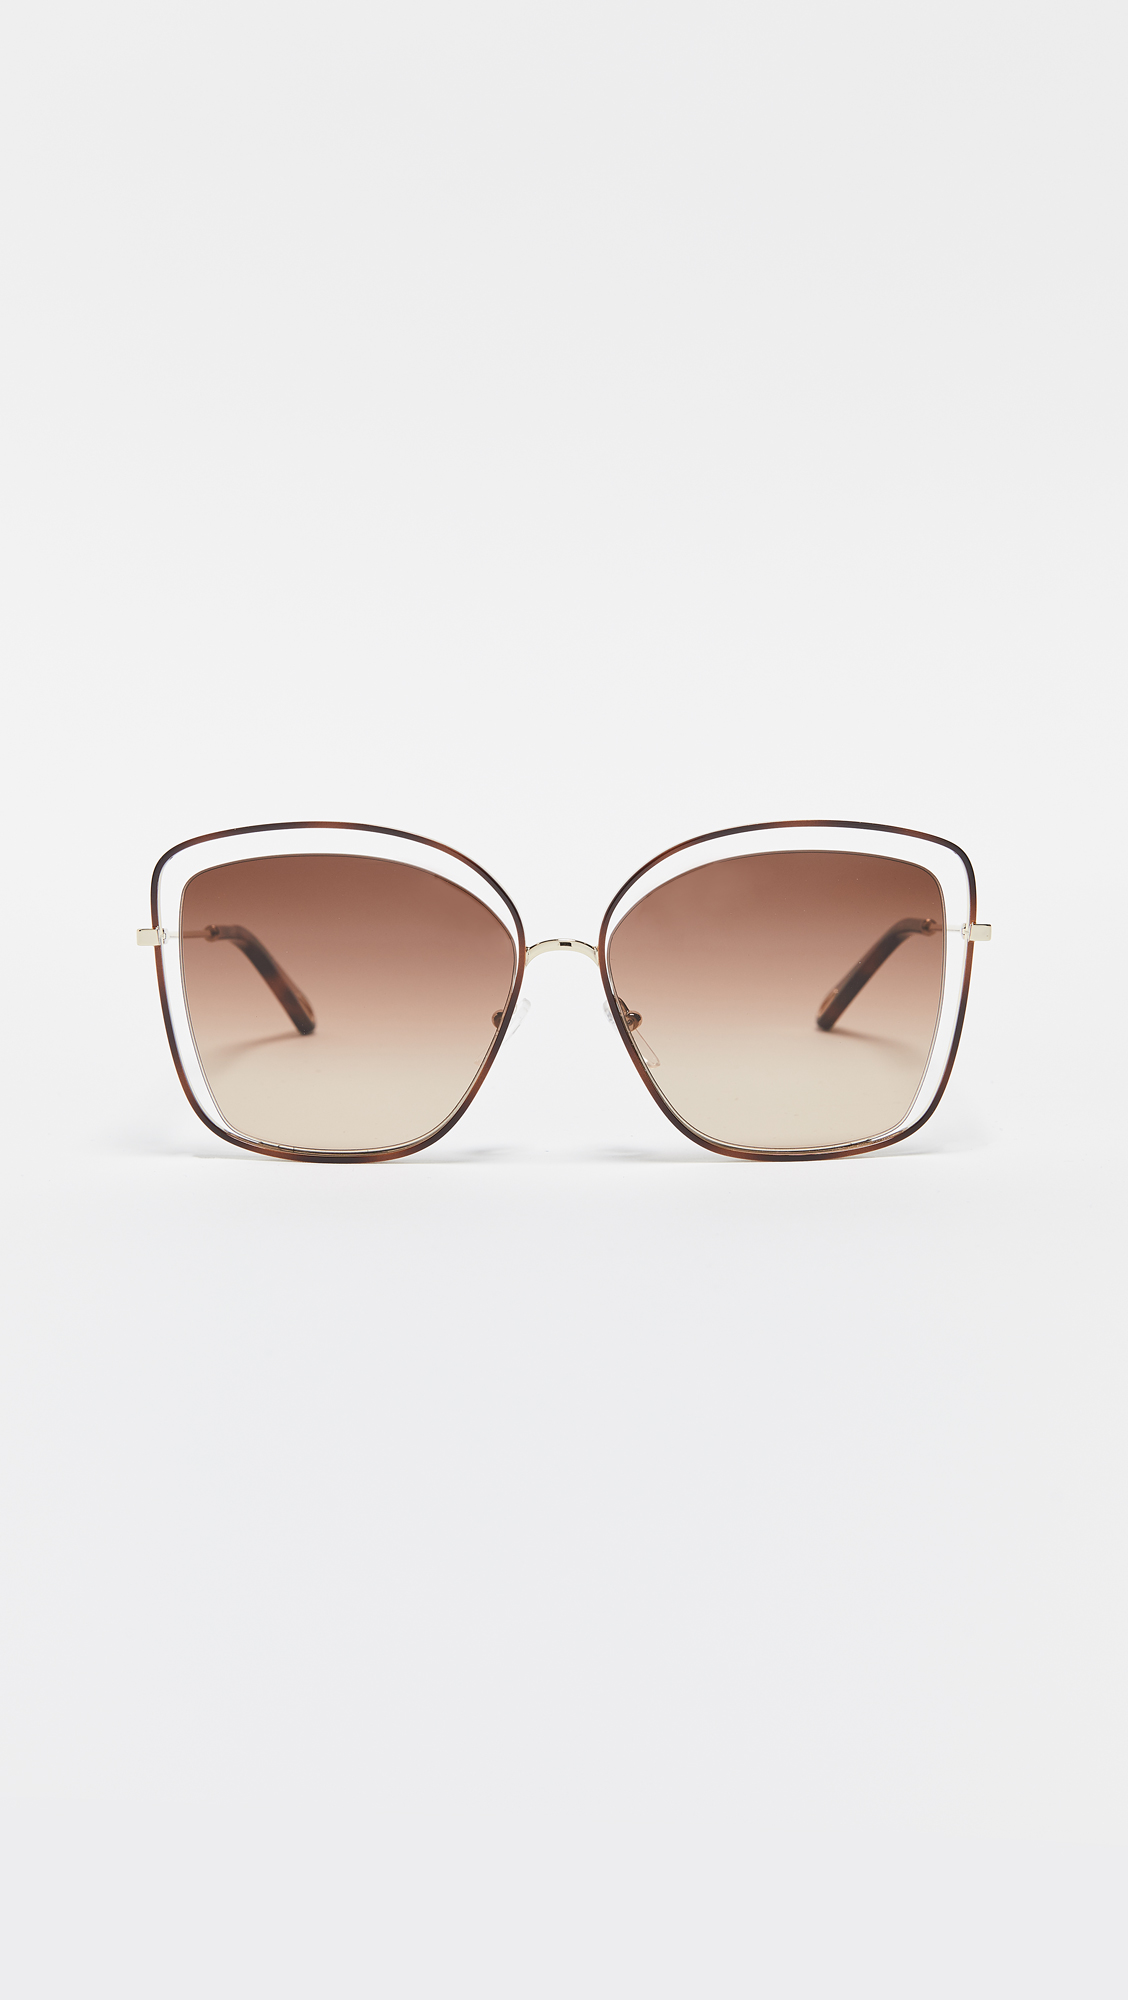 Cat-Eye Sunglasses - I love the retro-vibes of these sunglasses, and the extended wire frame that gives these shades a lightweight look.